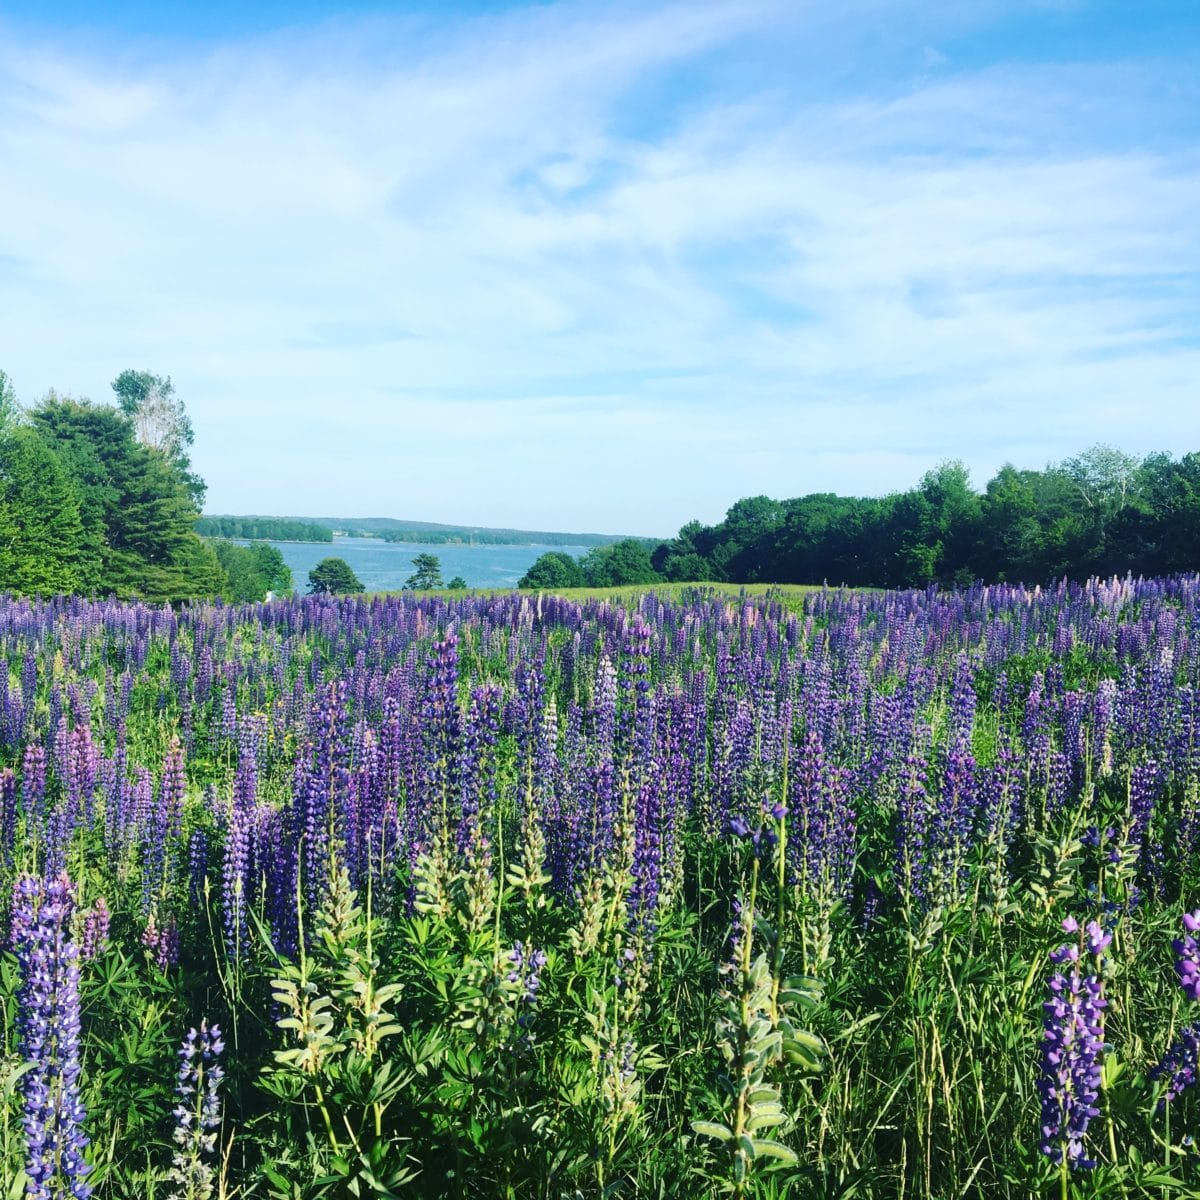 Lupines in bloom - Penobscot Bay, Camden ME